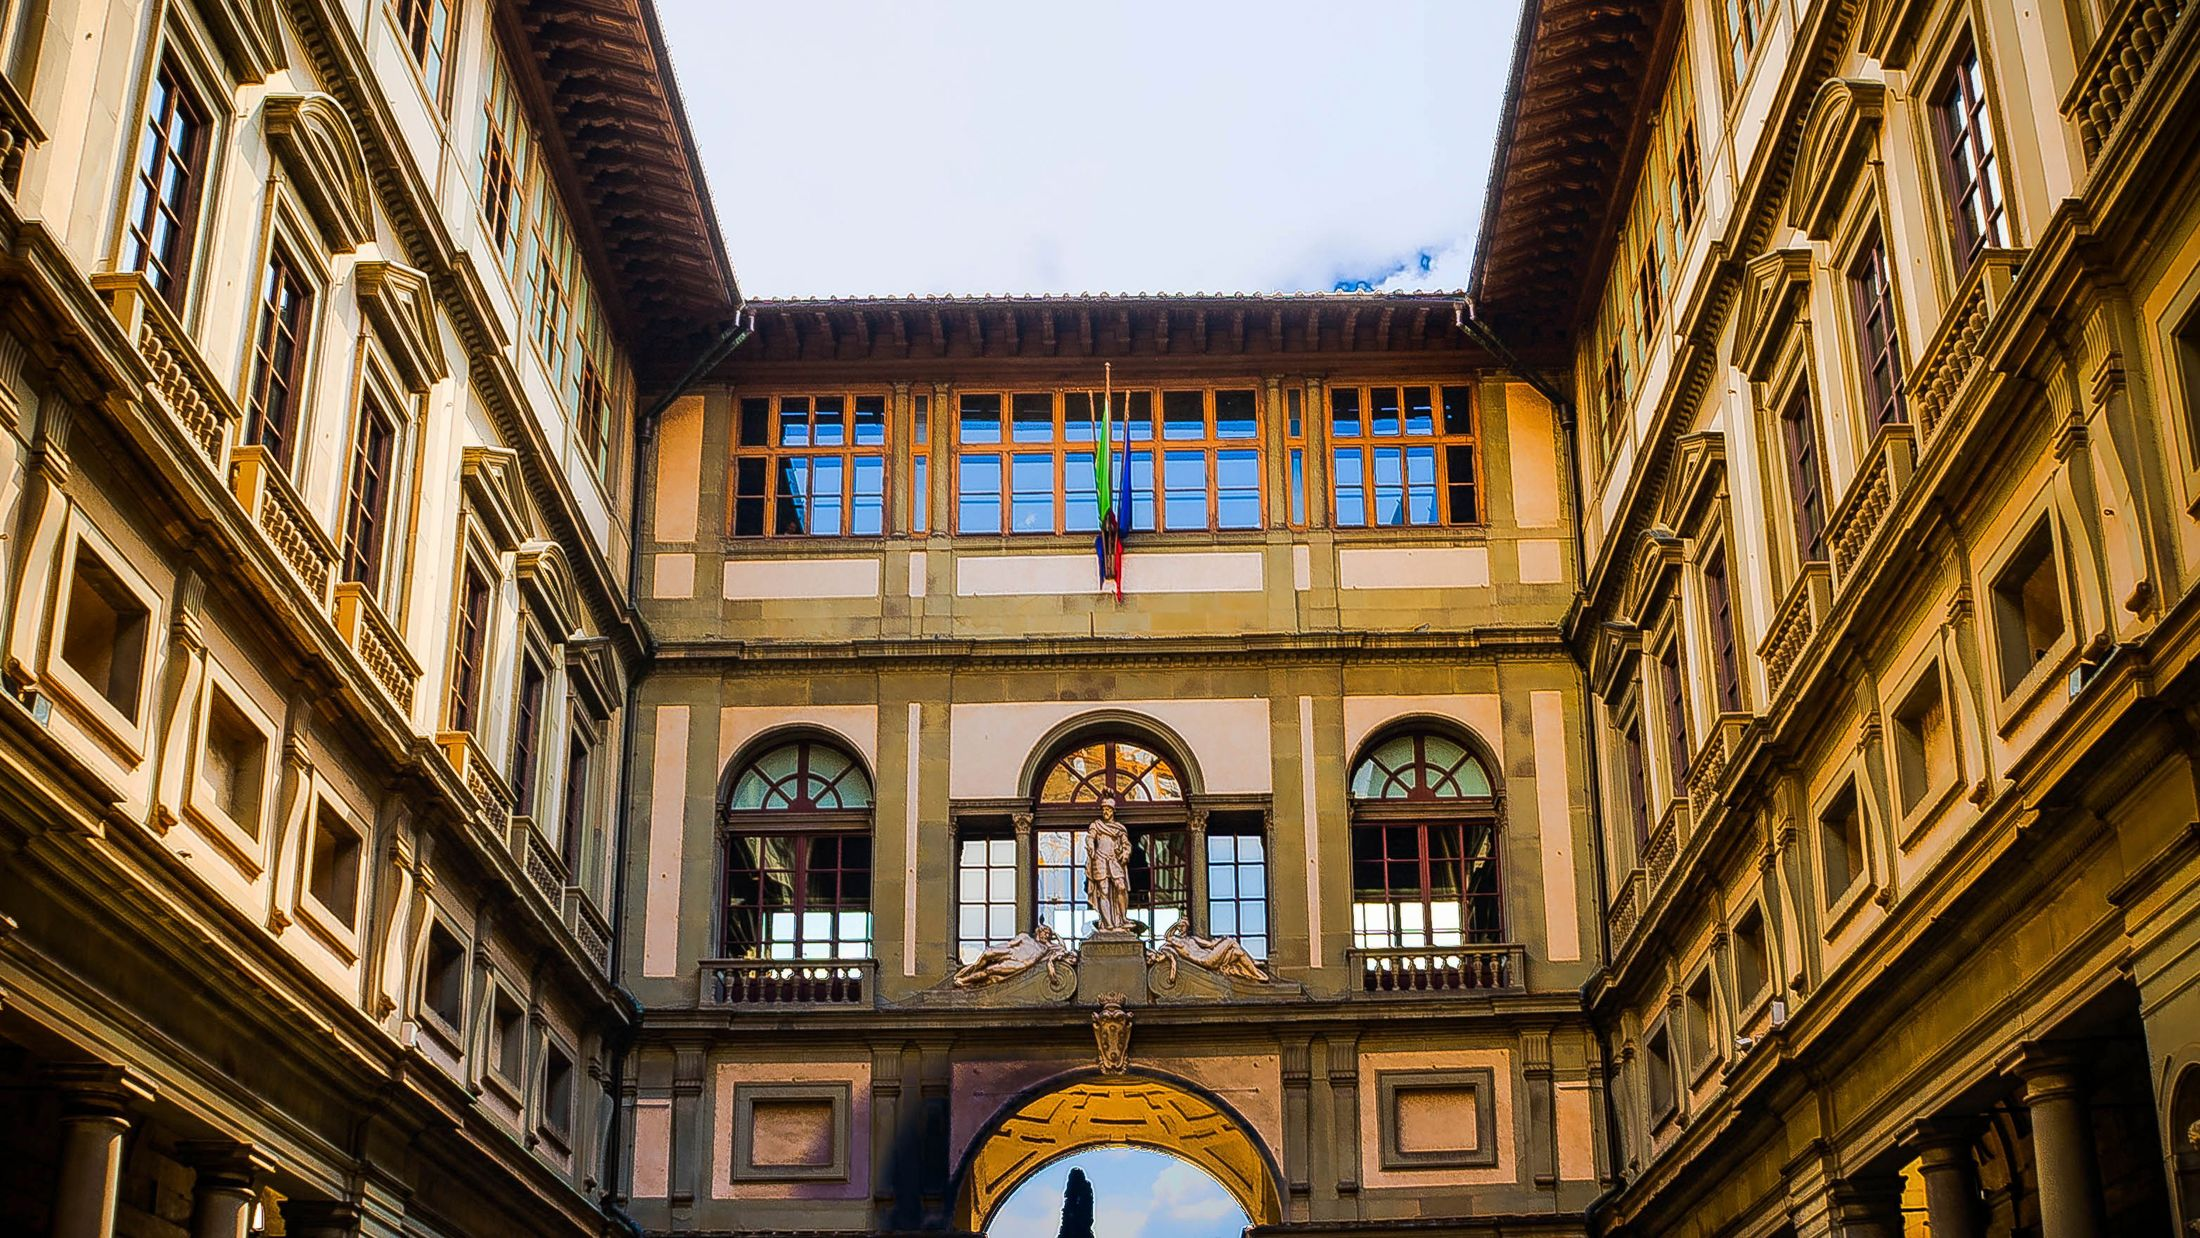 000424 Uffizi Gallery_Florence_Italy 001_Pixabay_florence-341469_no credit required-Hybris